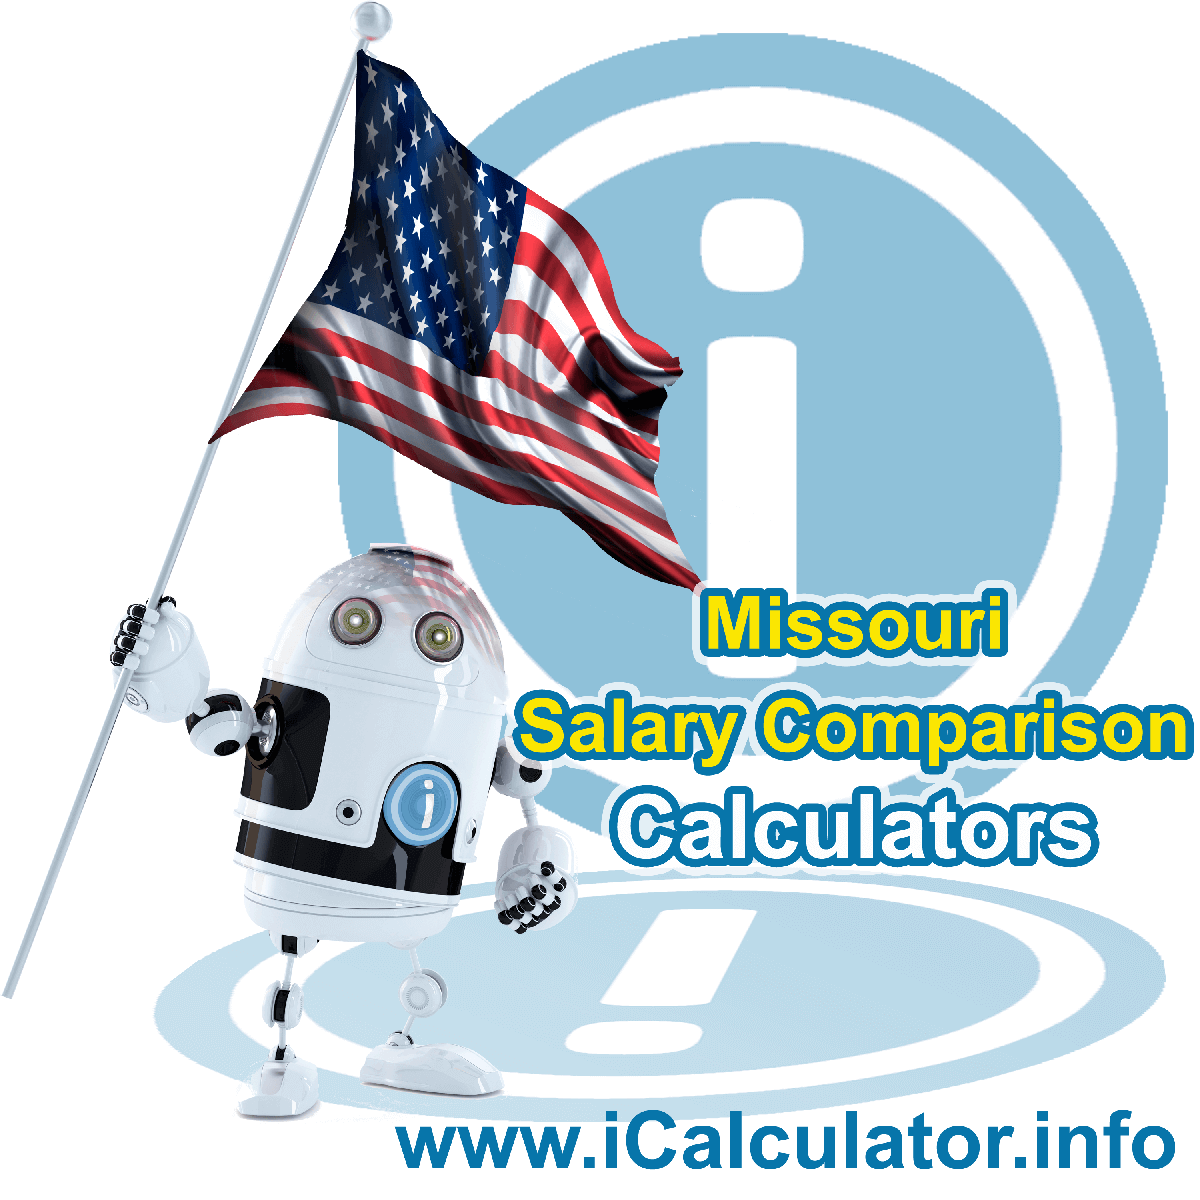 Missouri Salary Comparison Calculator 2019 | iCalculator | The Missouri Salary Comparison Calculator allows you to quickly calculate and compare upto 6 salaries in Missouri or between other states for the 2019 tax year and historical tax years. Its an excellent tool for jobseekers, pay raise comparison and comparison of salaries between different US States